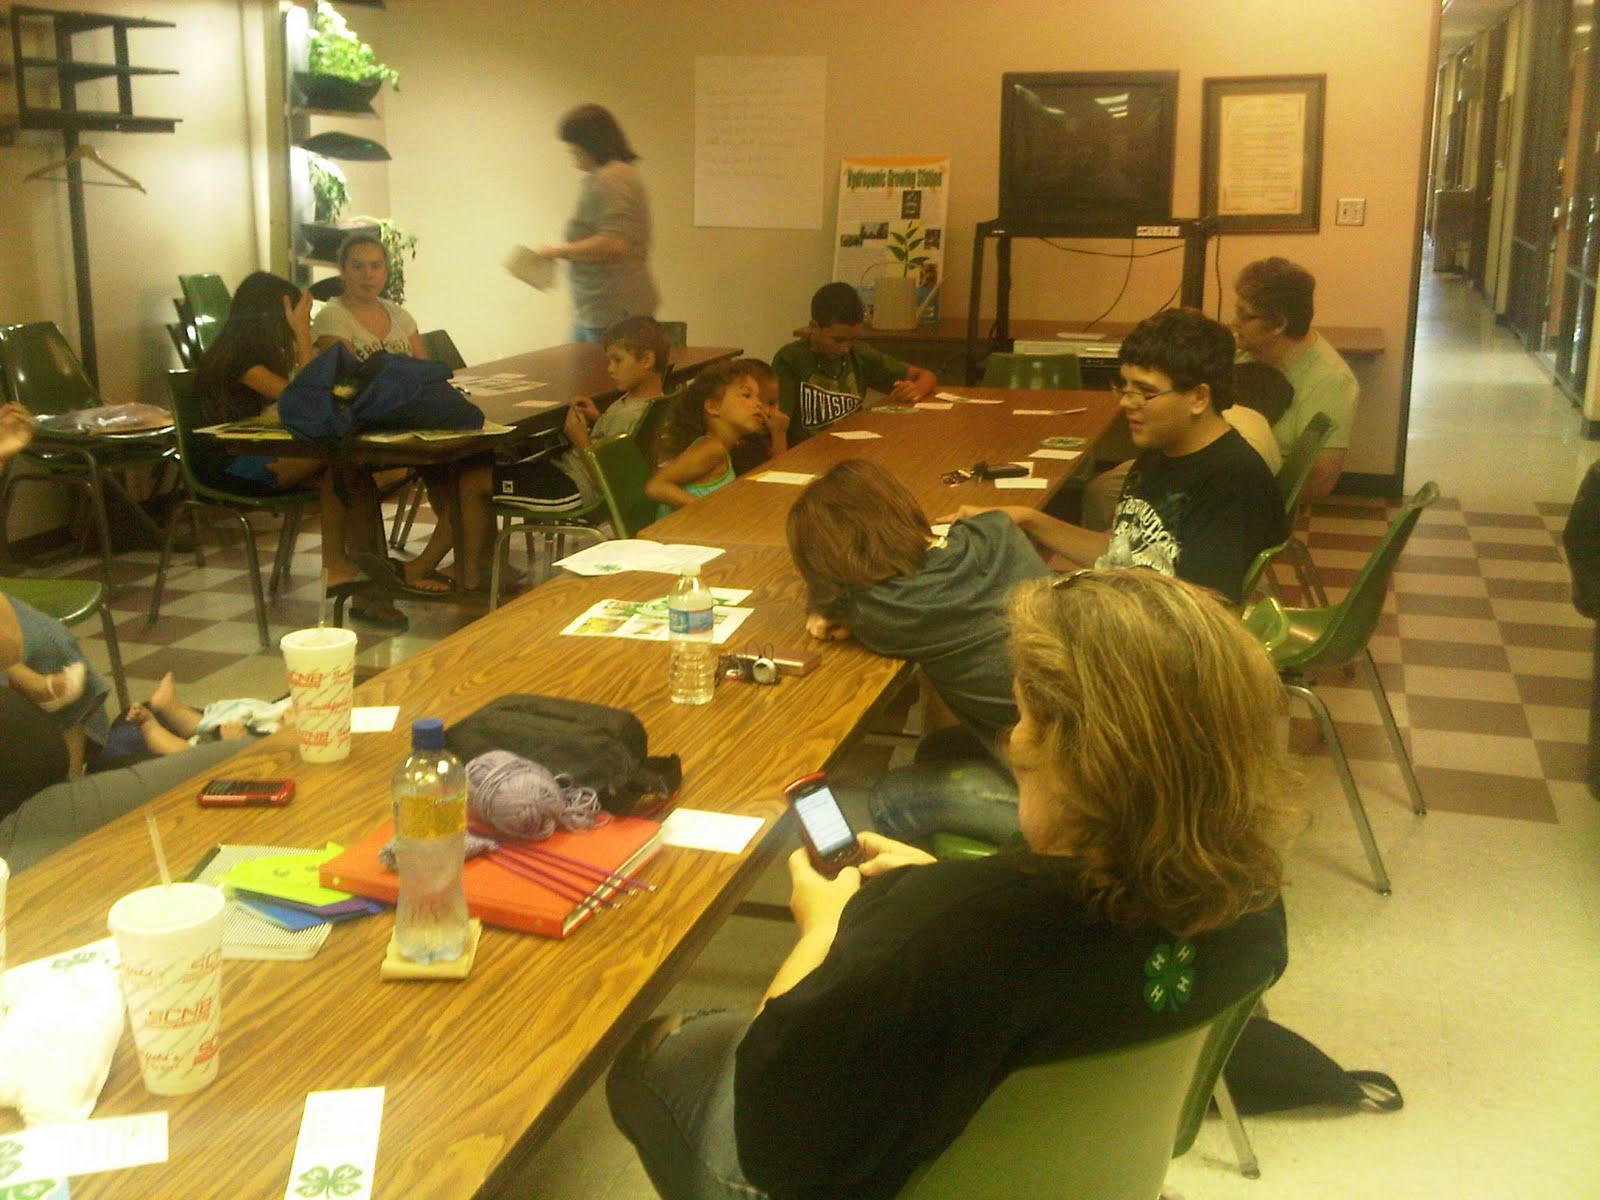 Robeson County 4-H: Getting Crafty About Planning